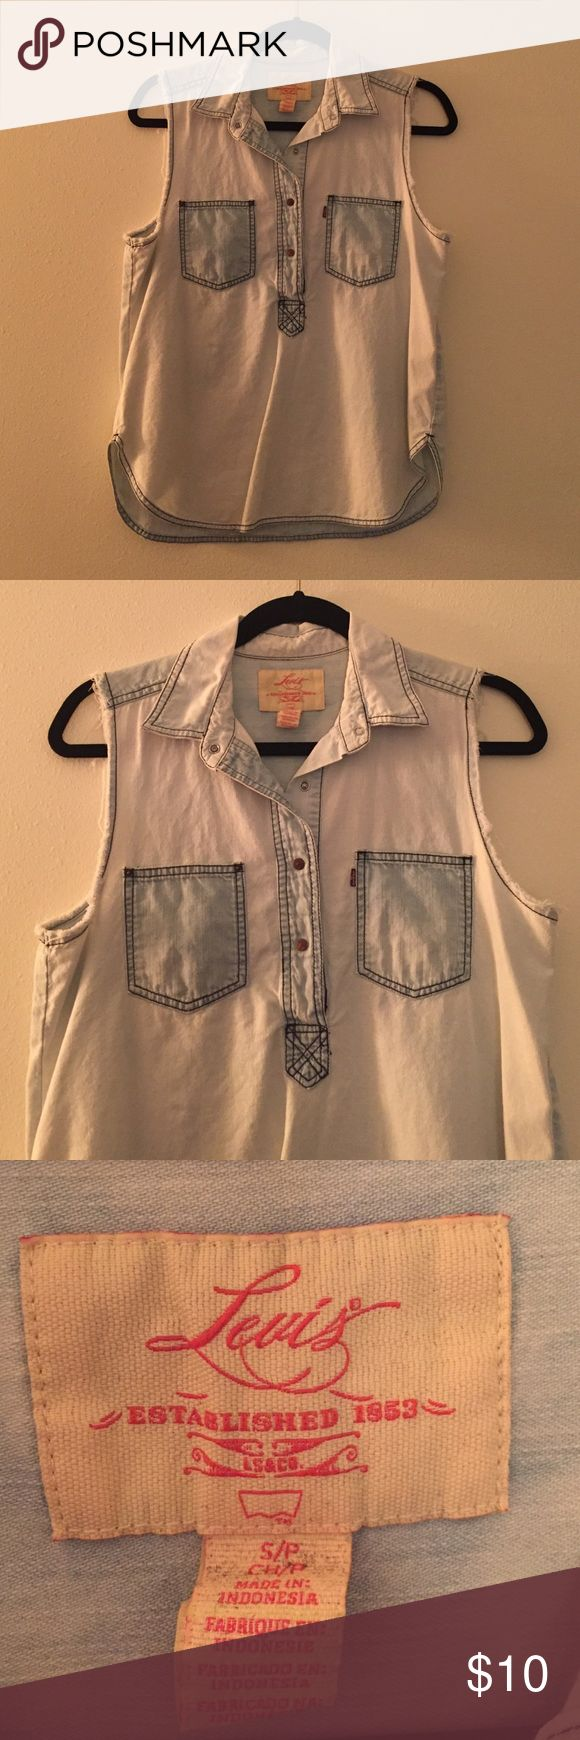 Levi's Sleeveless Denim Shirt Levi's sleeveless denim shirt. Great condition. 100% cotton. Levi's Tops Button Down Shirts